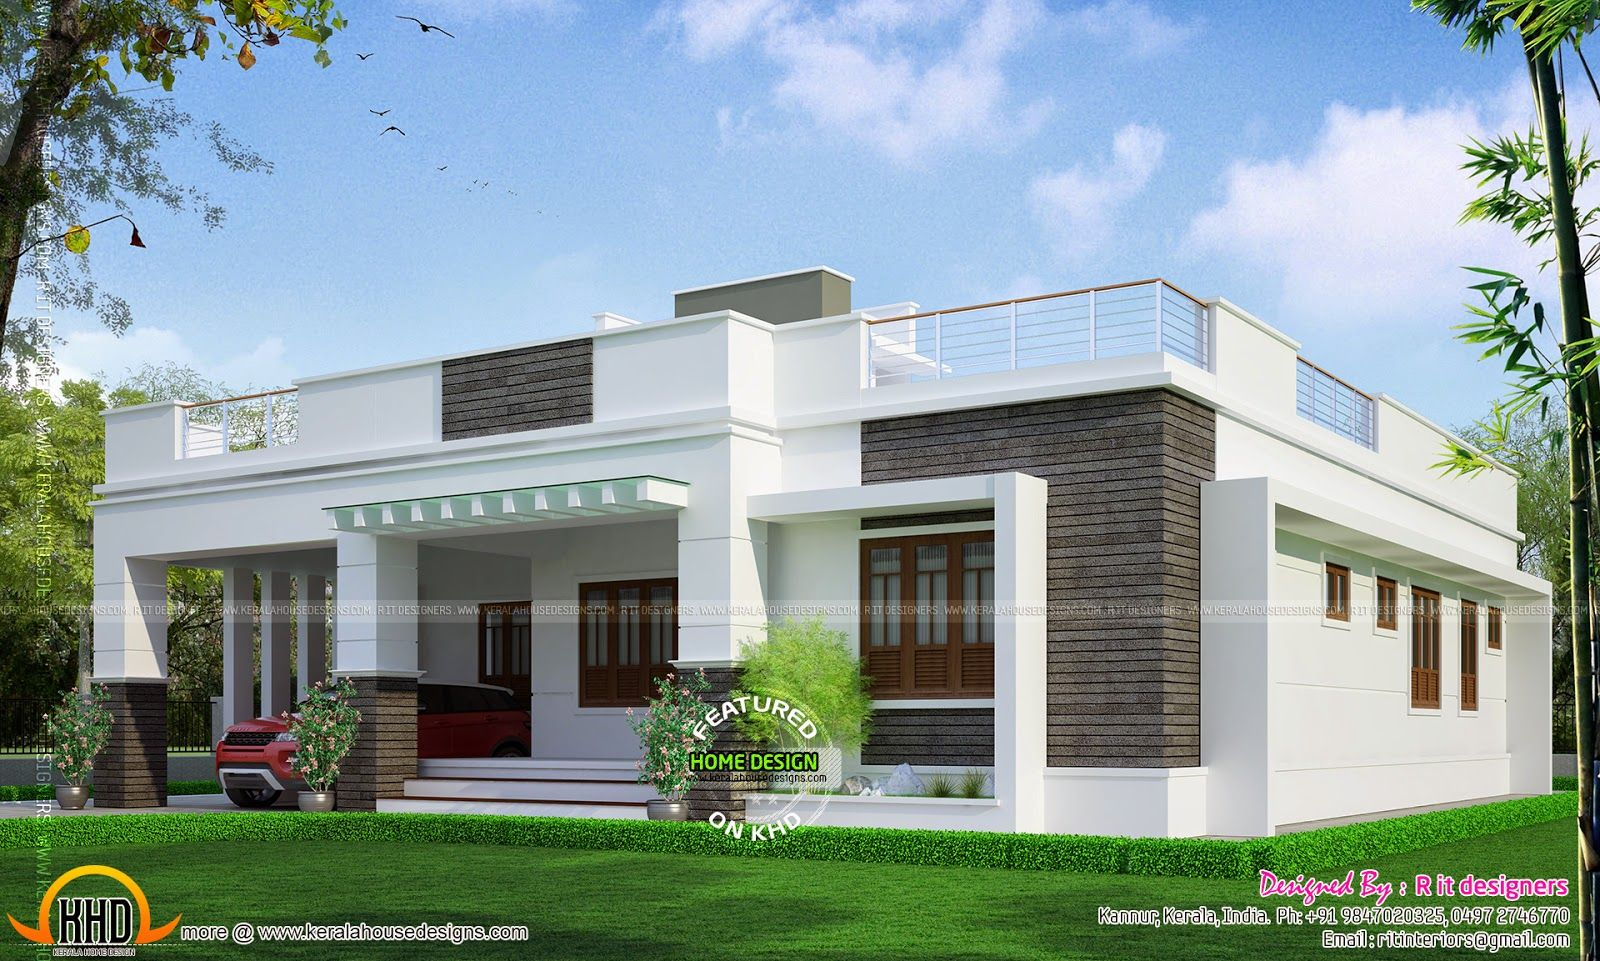 single floor house design india plans 2017 | my dreams | pinterest